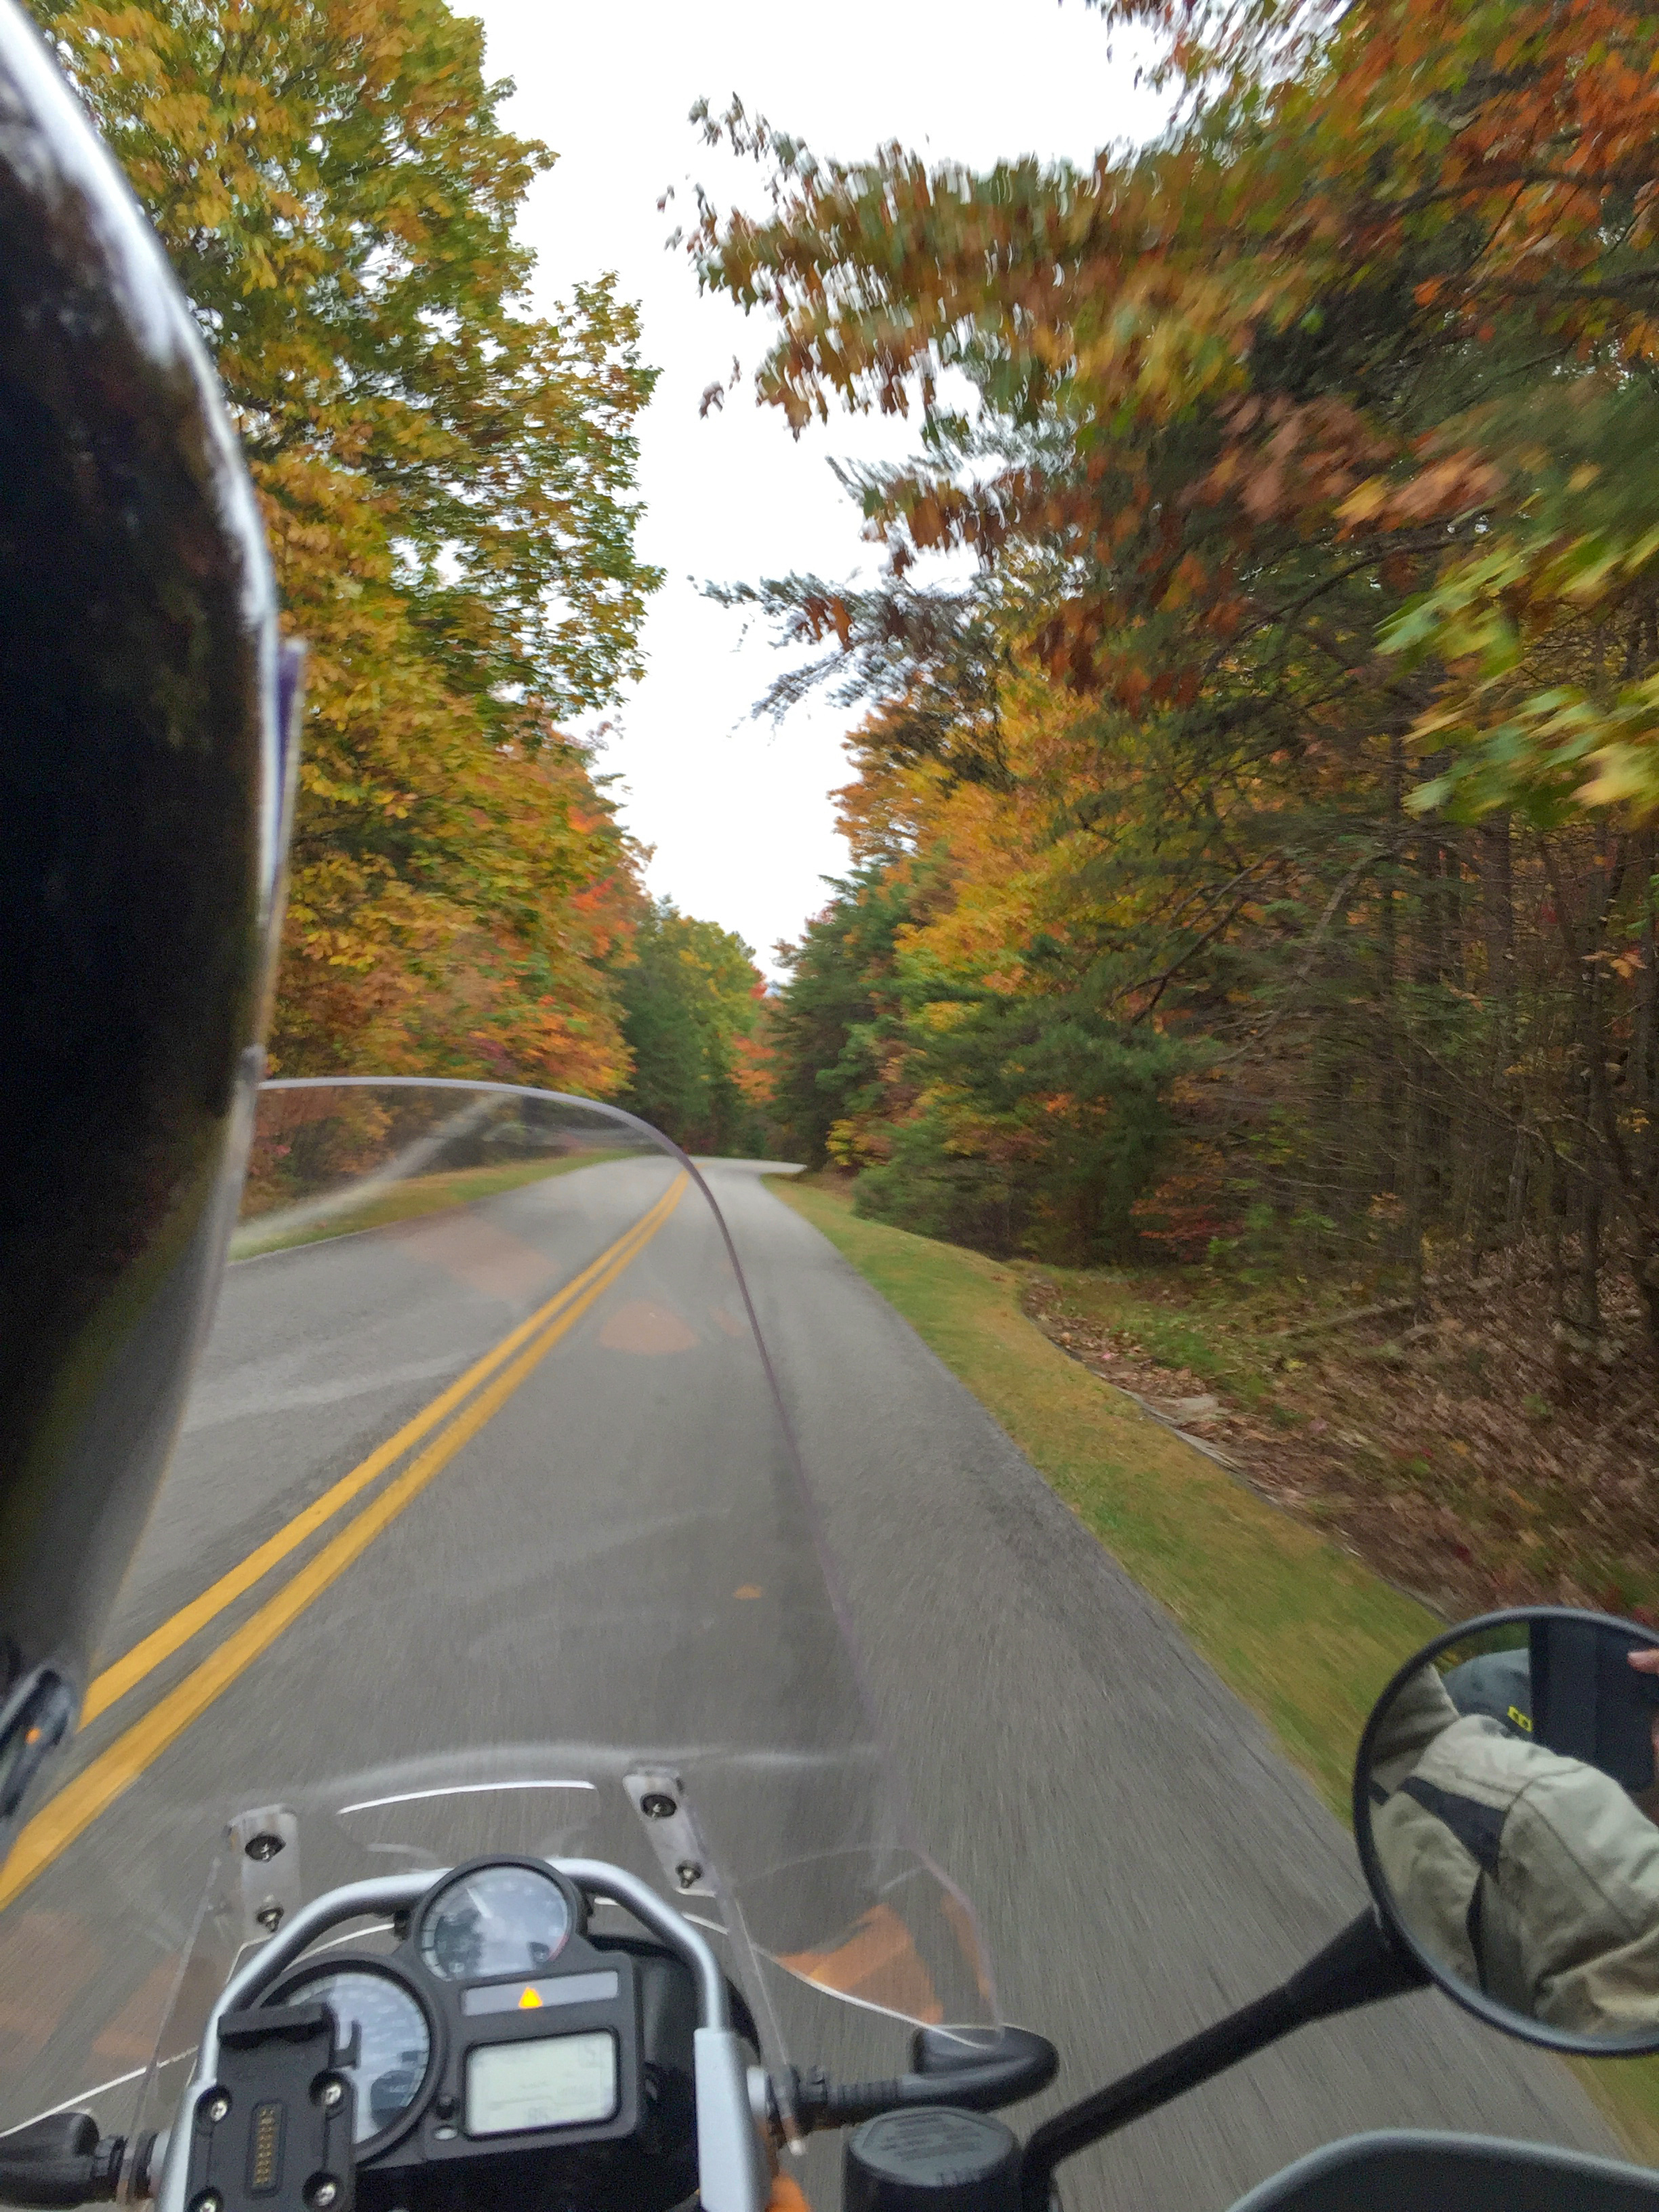 Riding the tail of the dragon in Tennessee